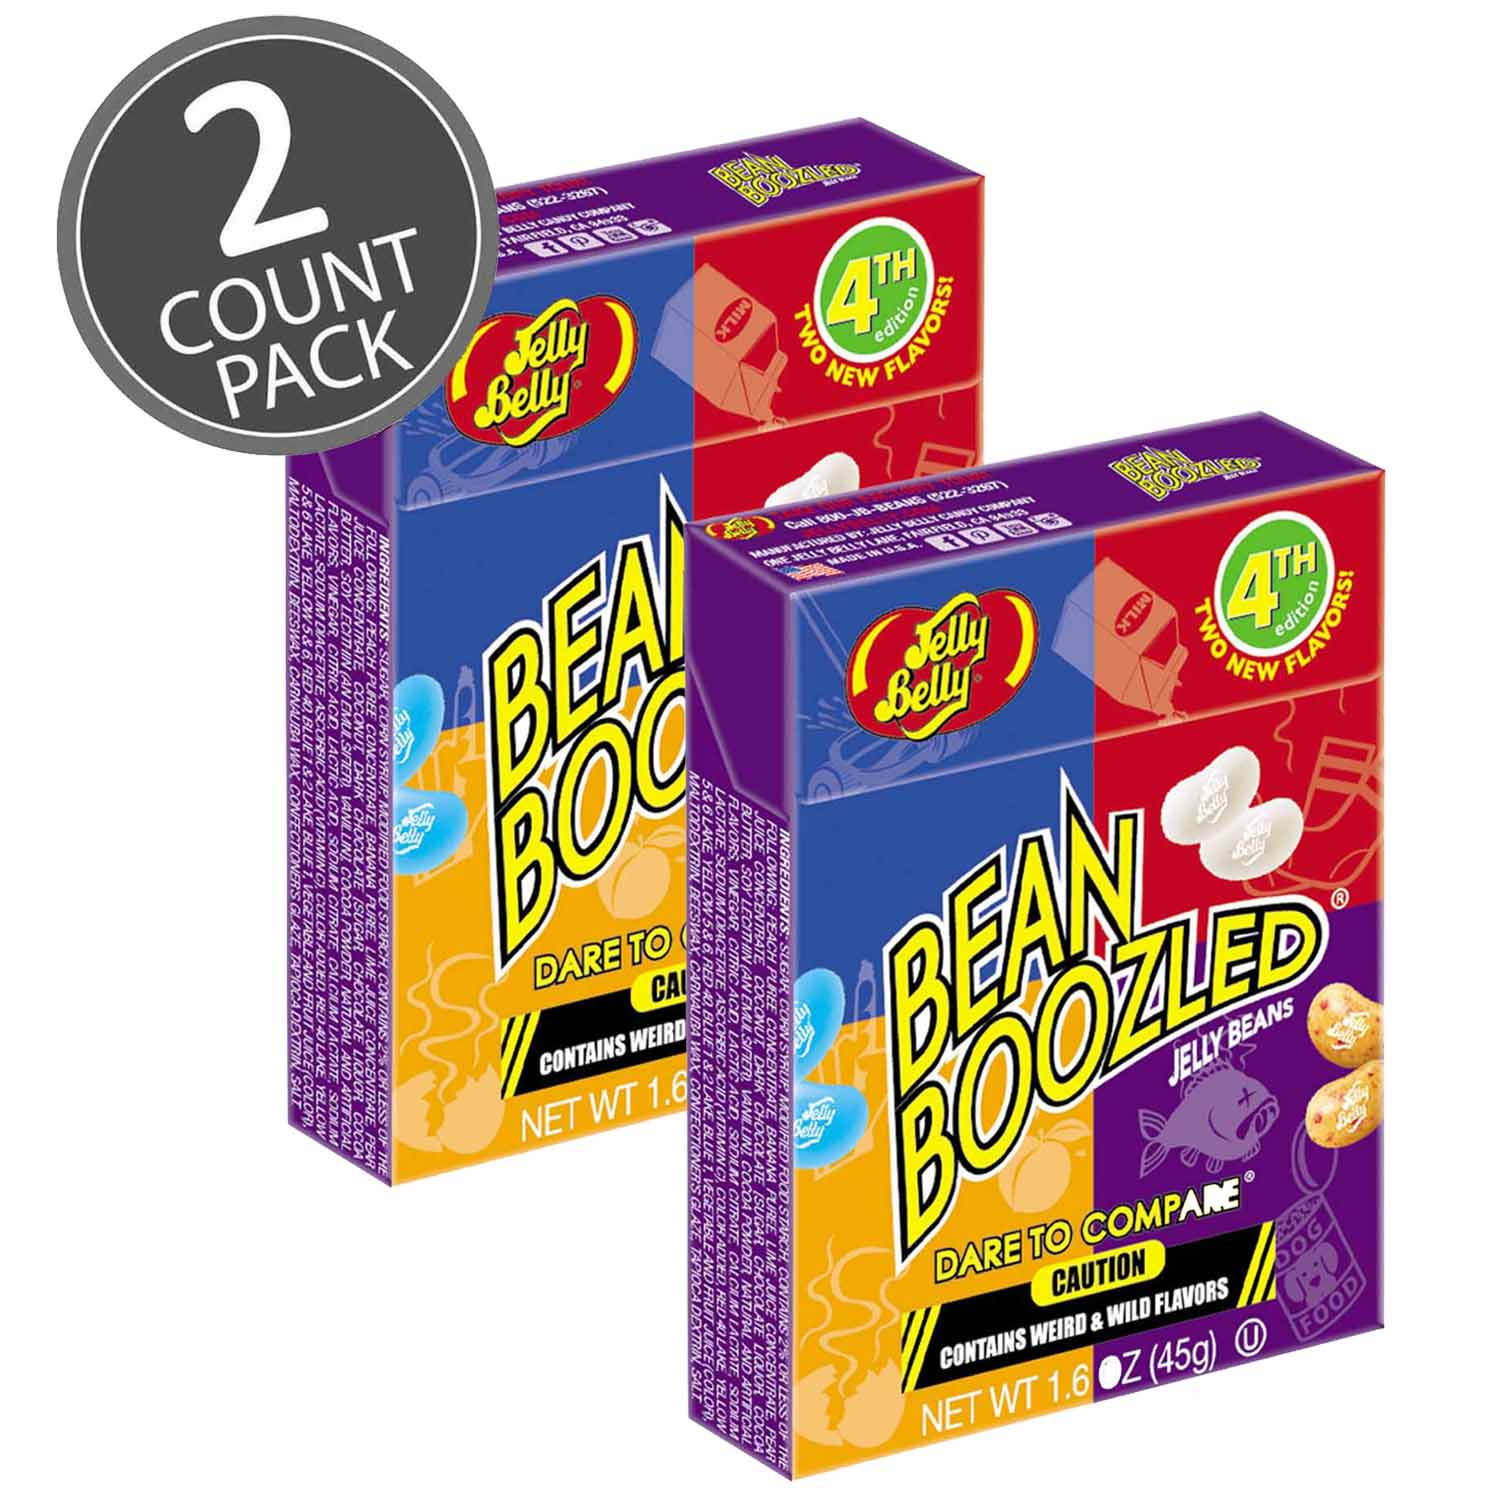 Jelly Belly BeanBoozled Jelly Beans 1.6 oz Box (4th edition) (2 Pack) by